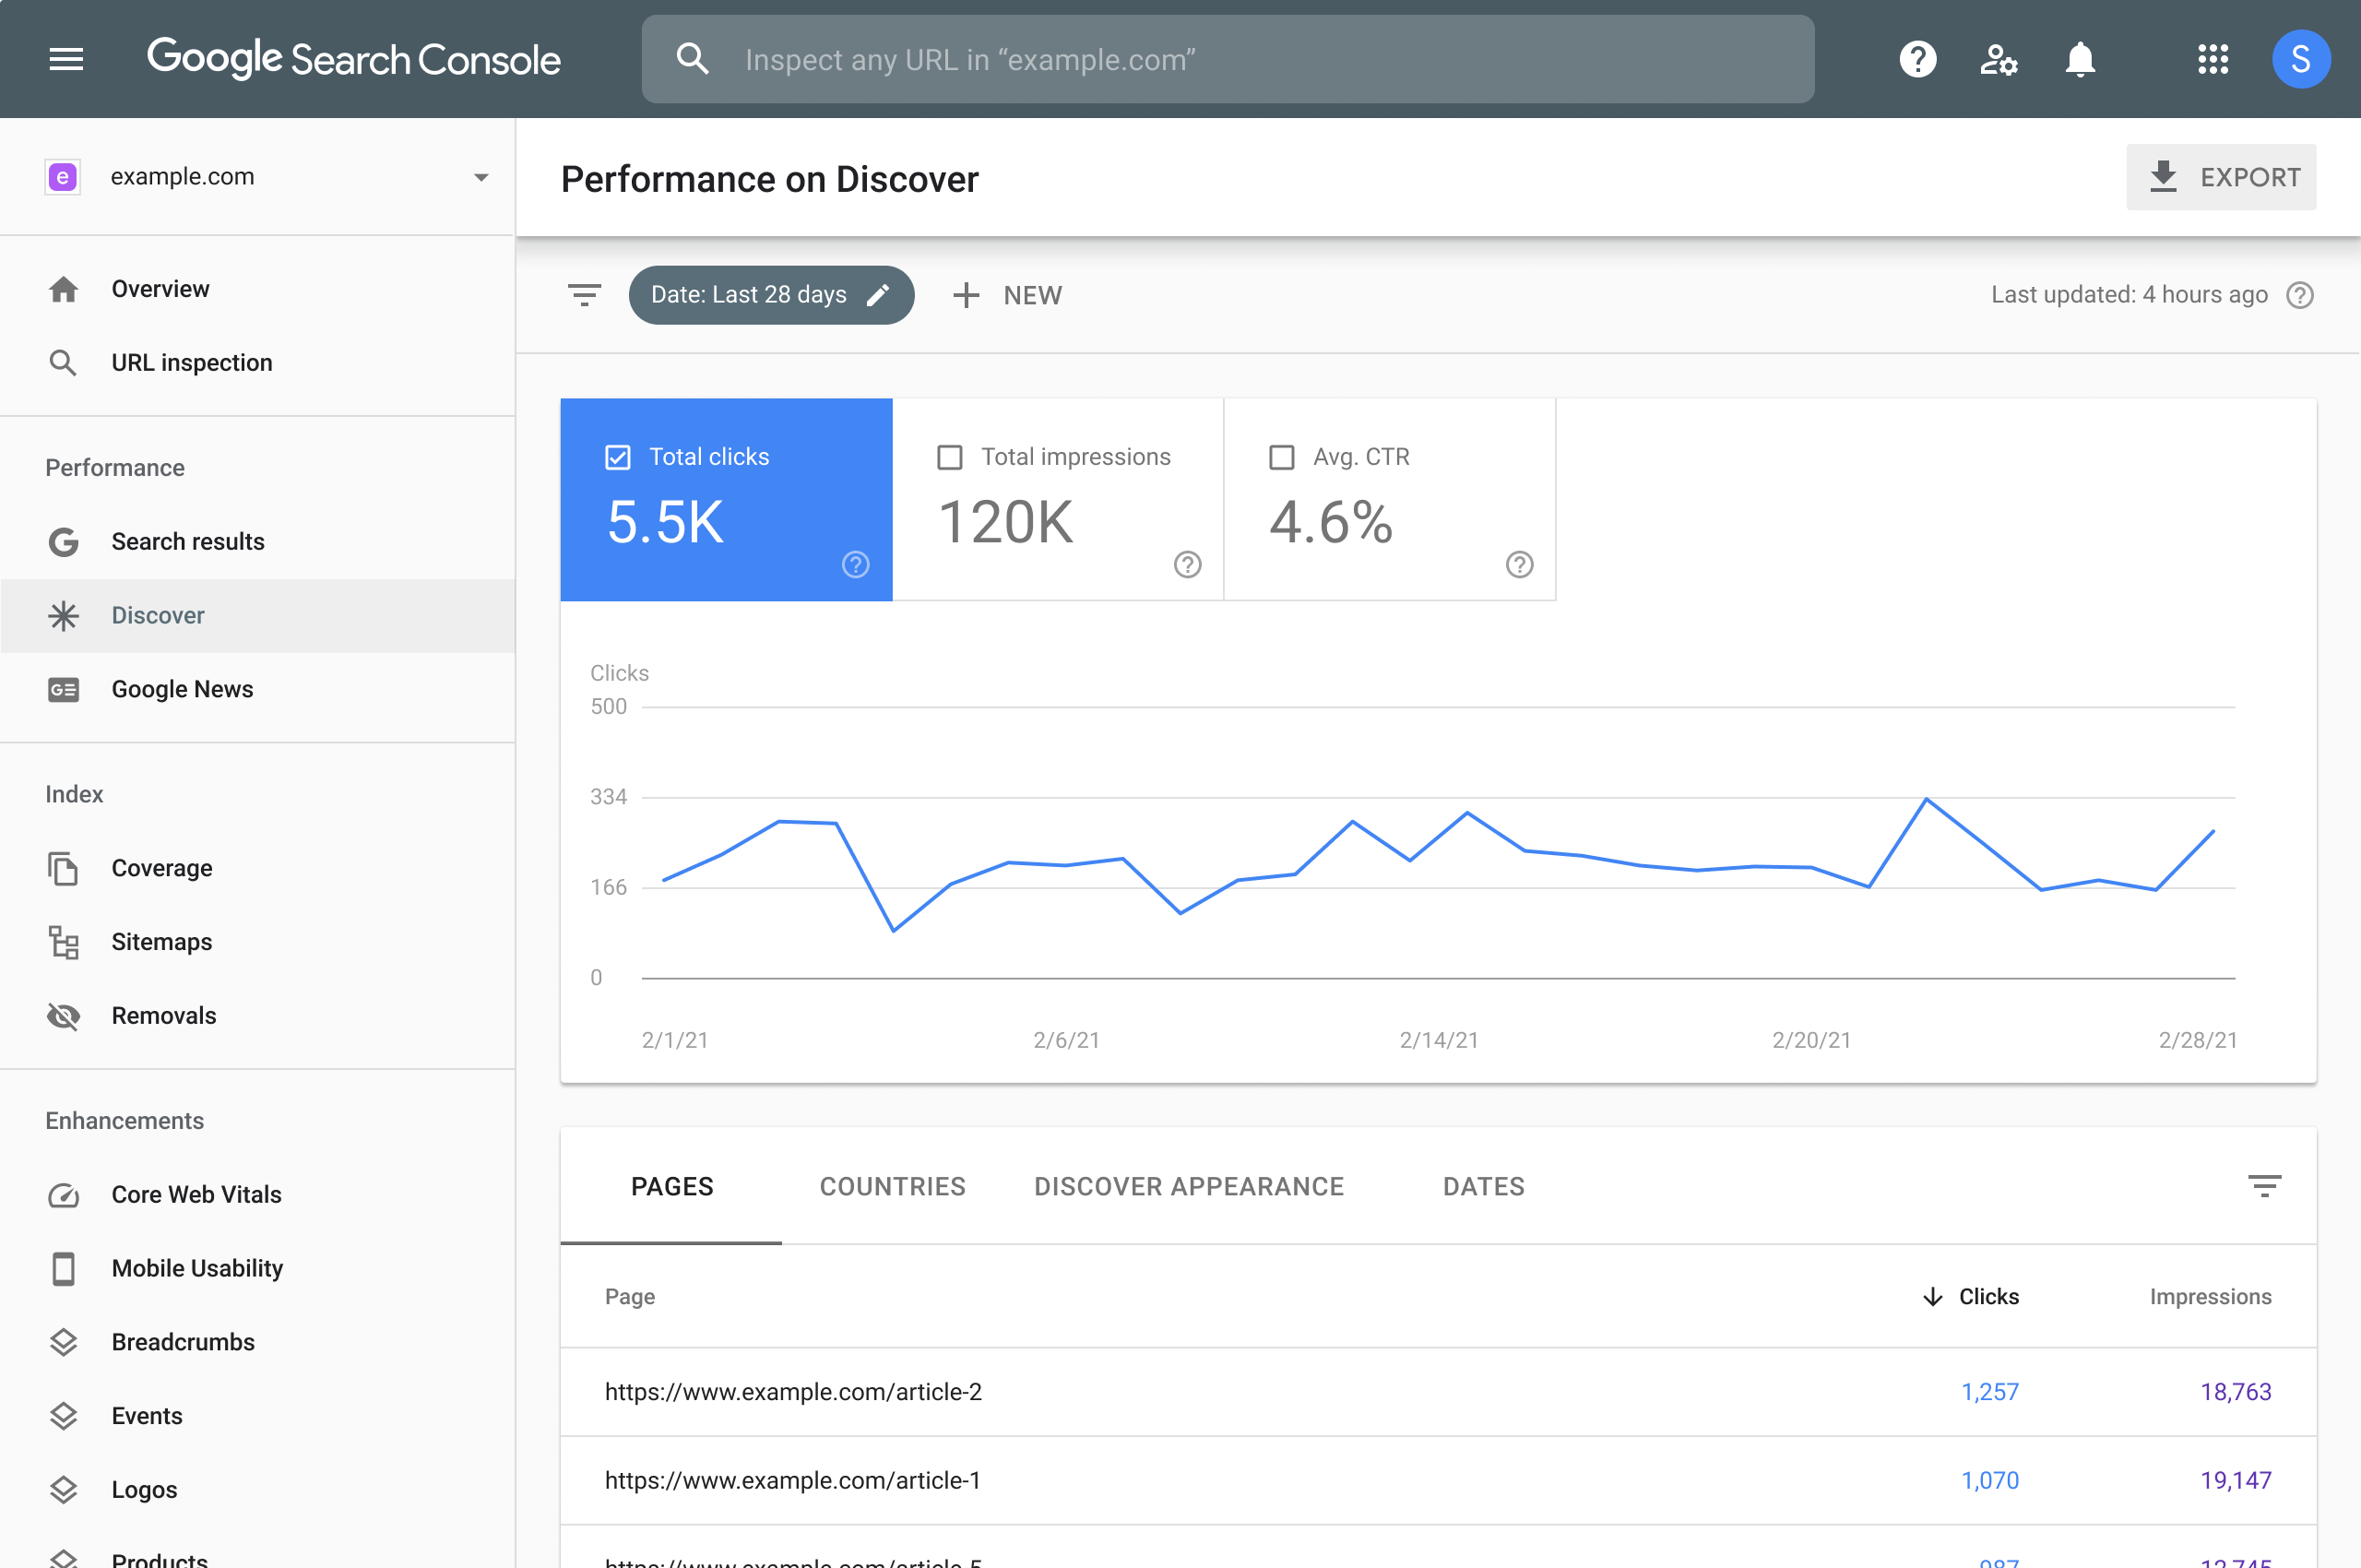 Google Search Console の Discover パフォーマンス レポート